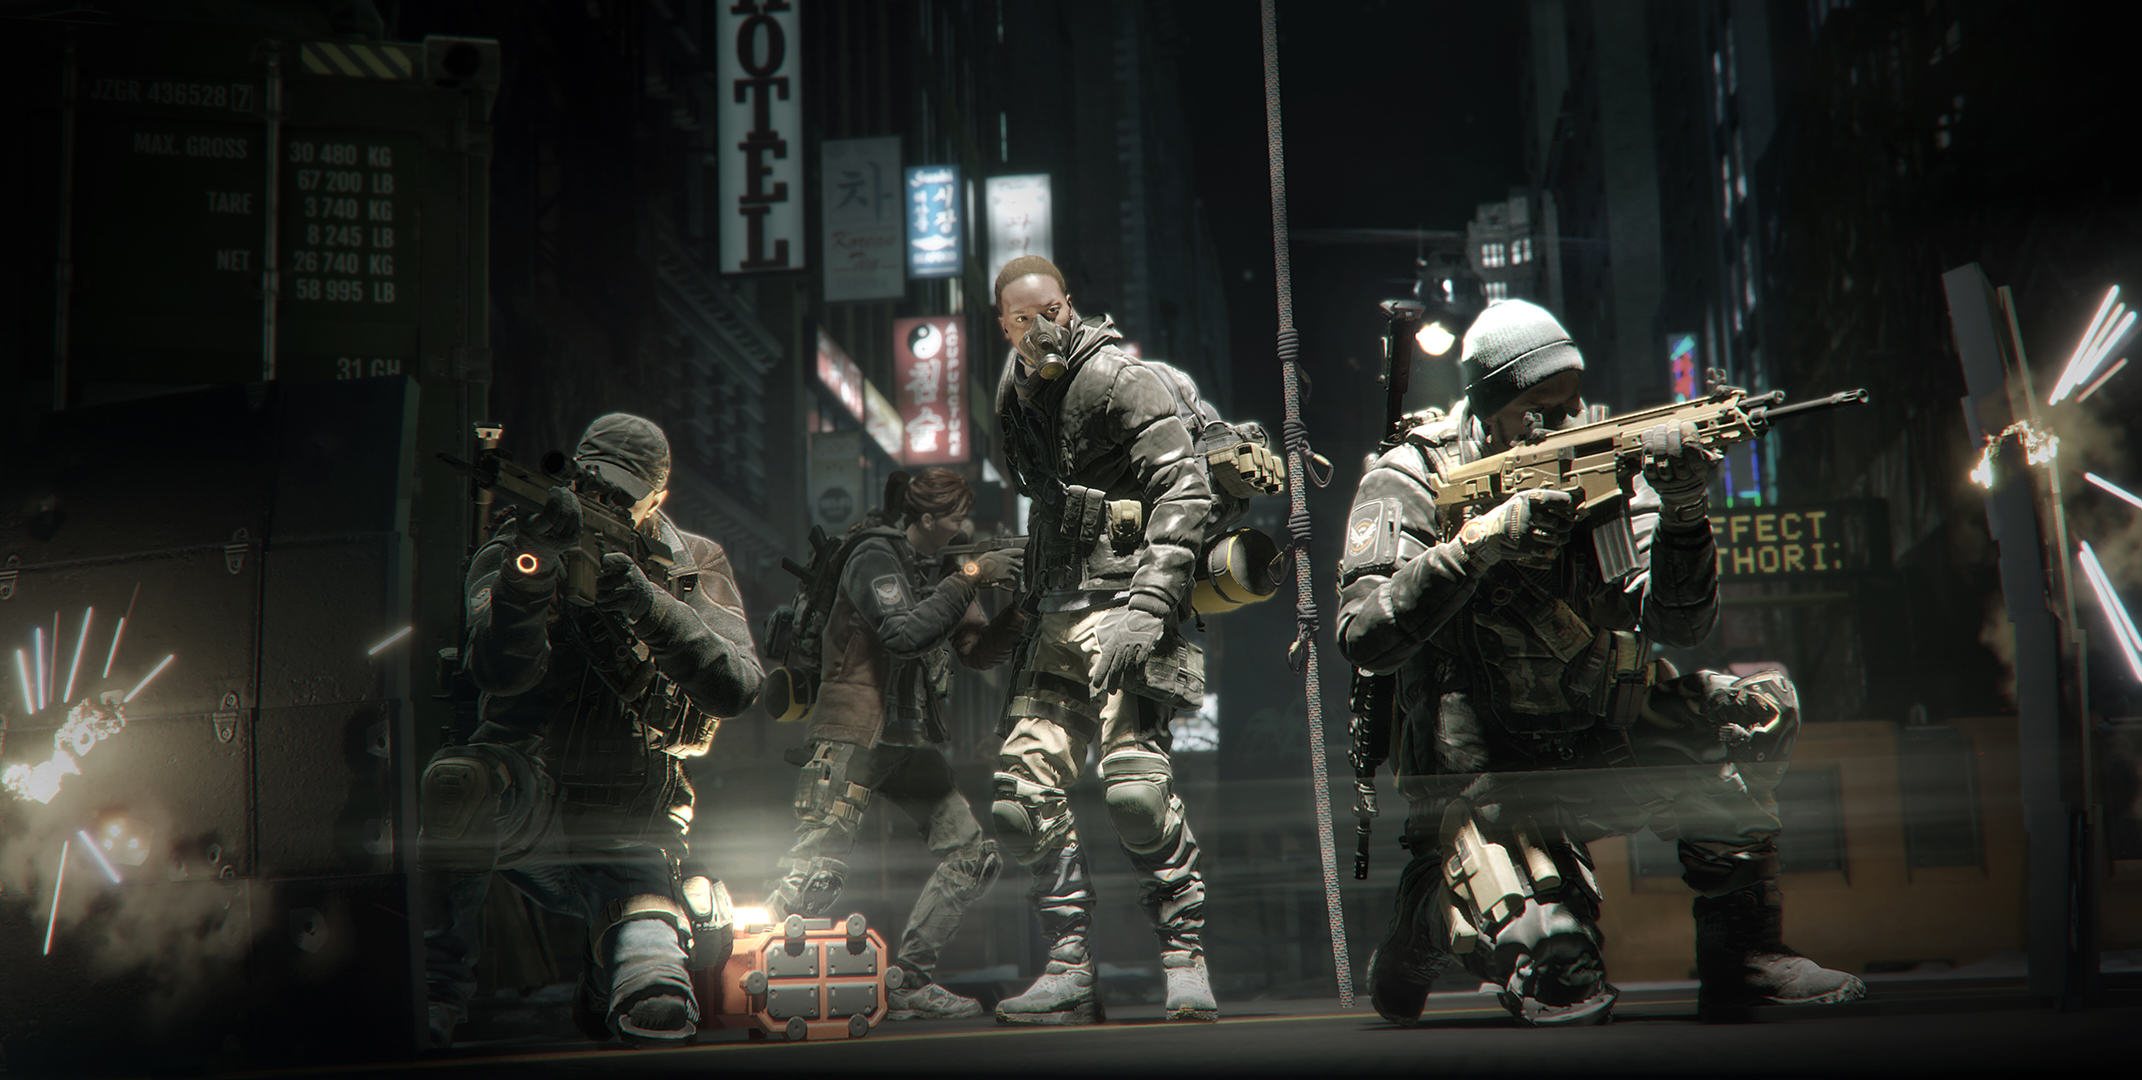 We Had An Exclusive Look At The Division Ahead Of Release Day TCTD 1601 web screenshot team formation